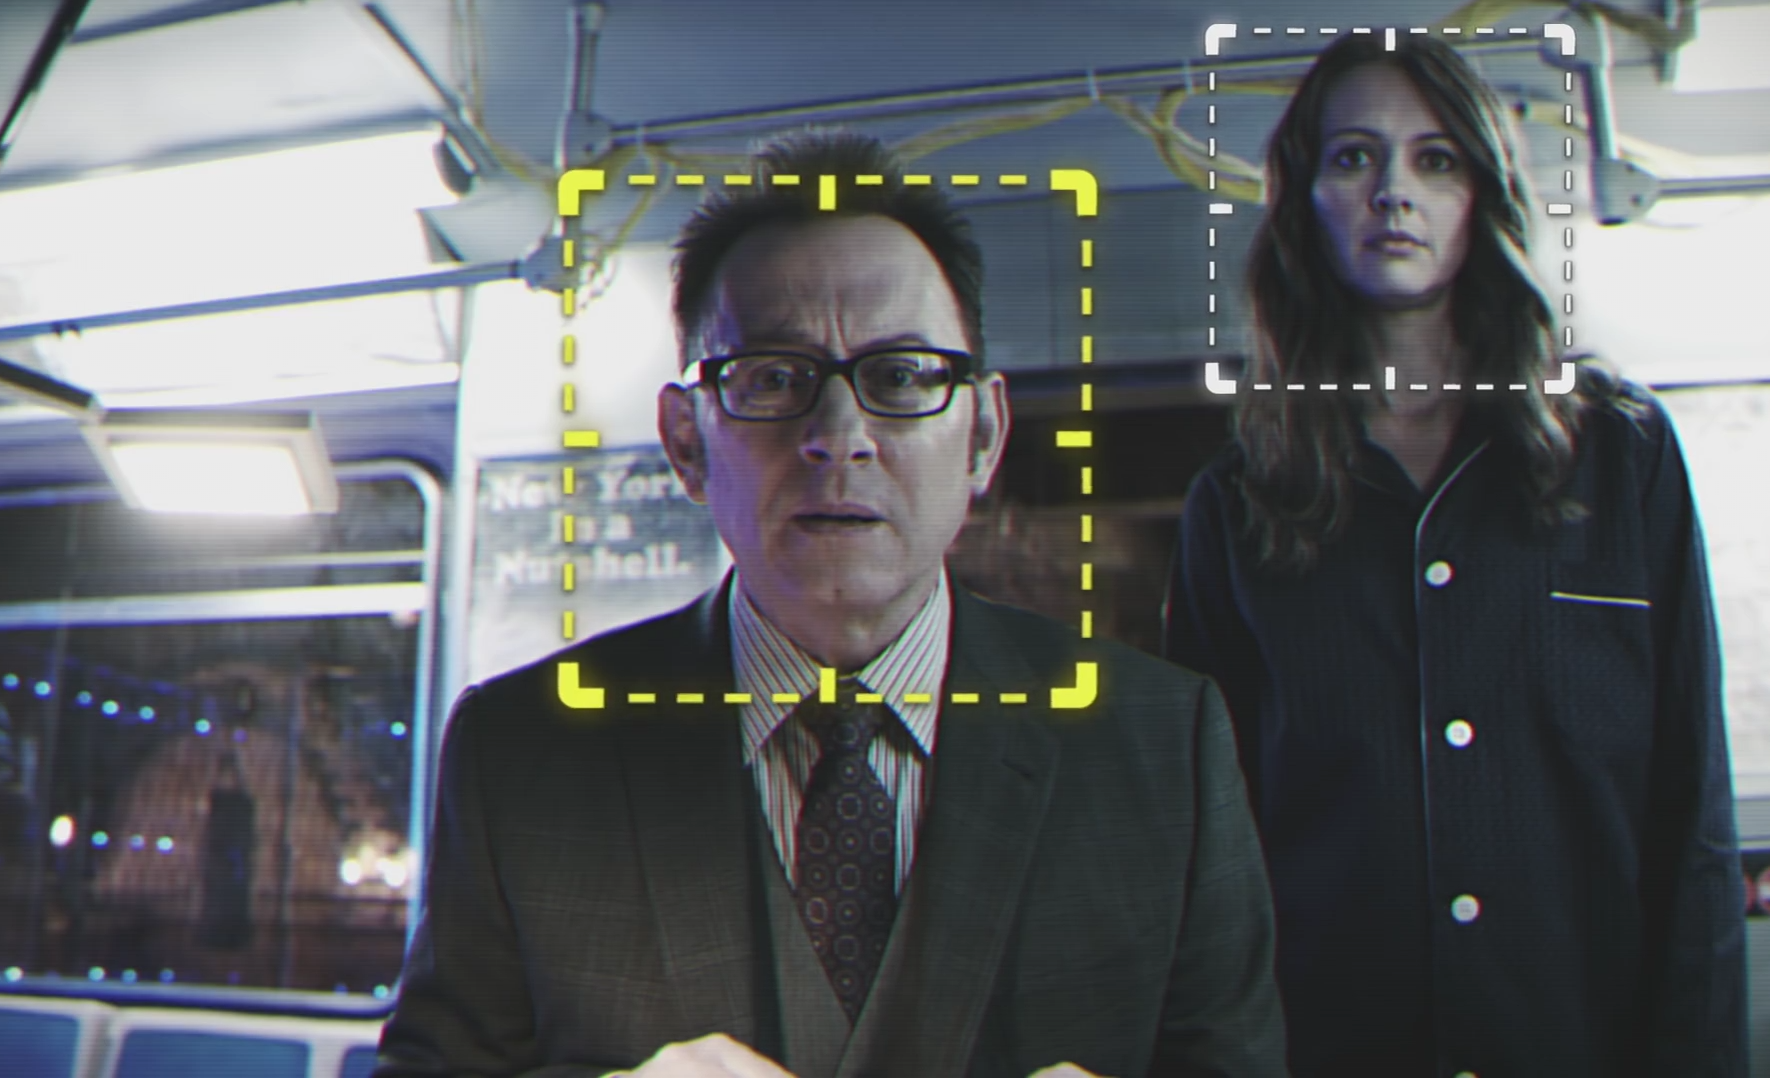 person_of_interest_facial_recognition